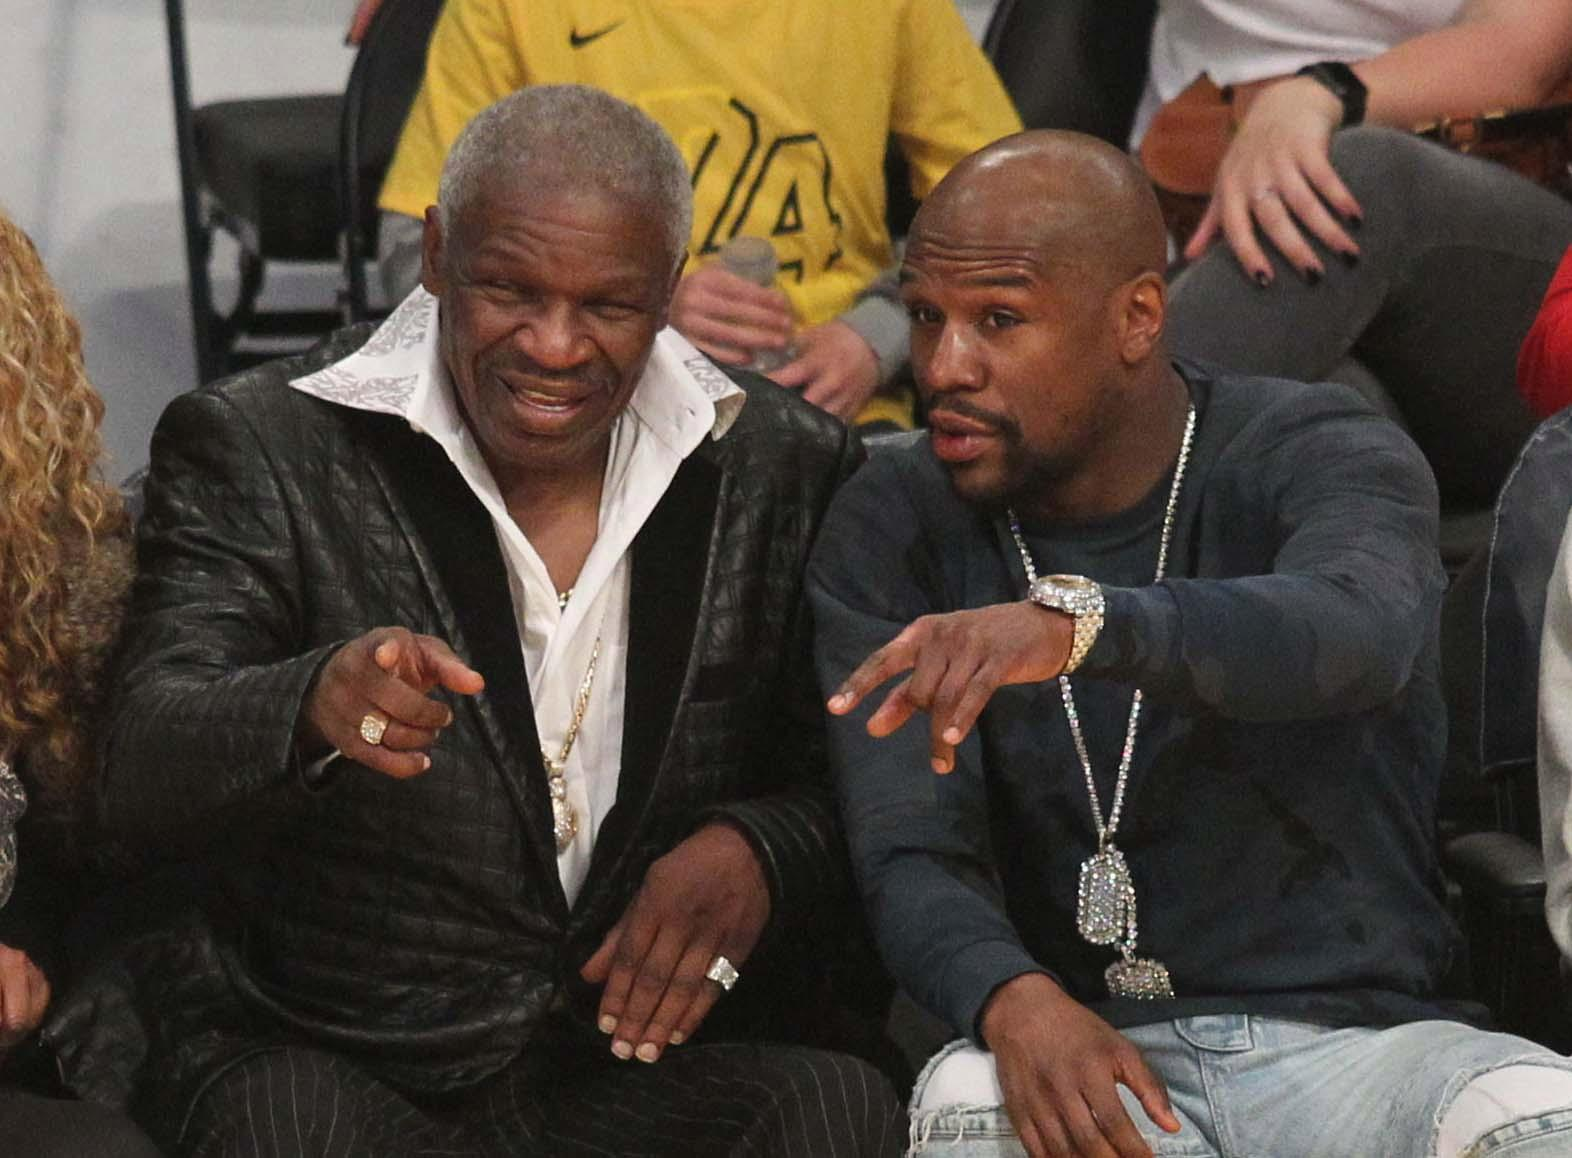 Floyd Mayweather vs Conor McGregor II underway as boxing legend reveals plans for MMA licence